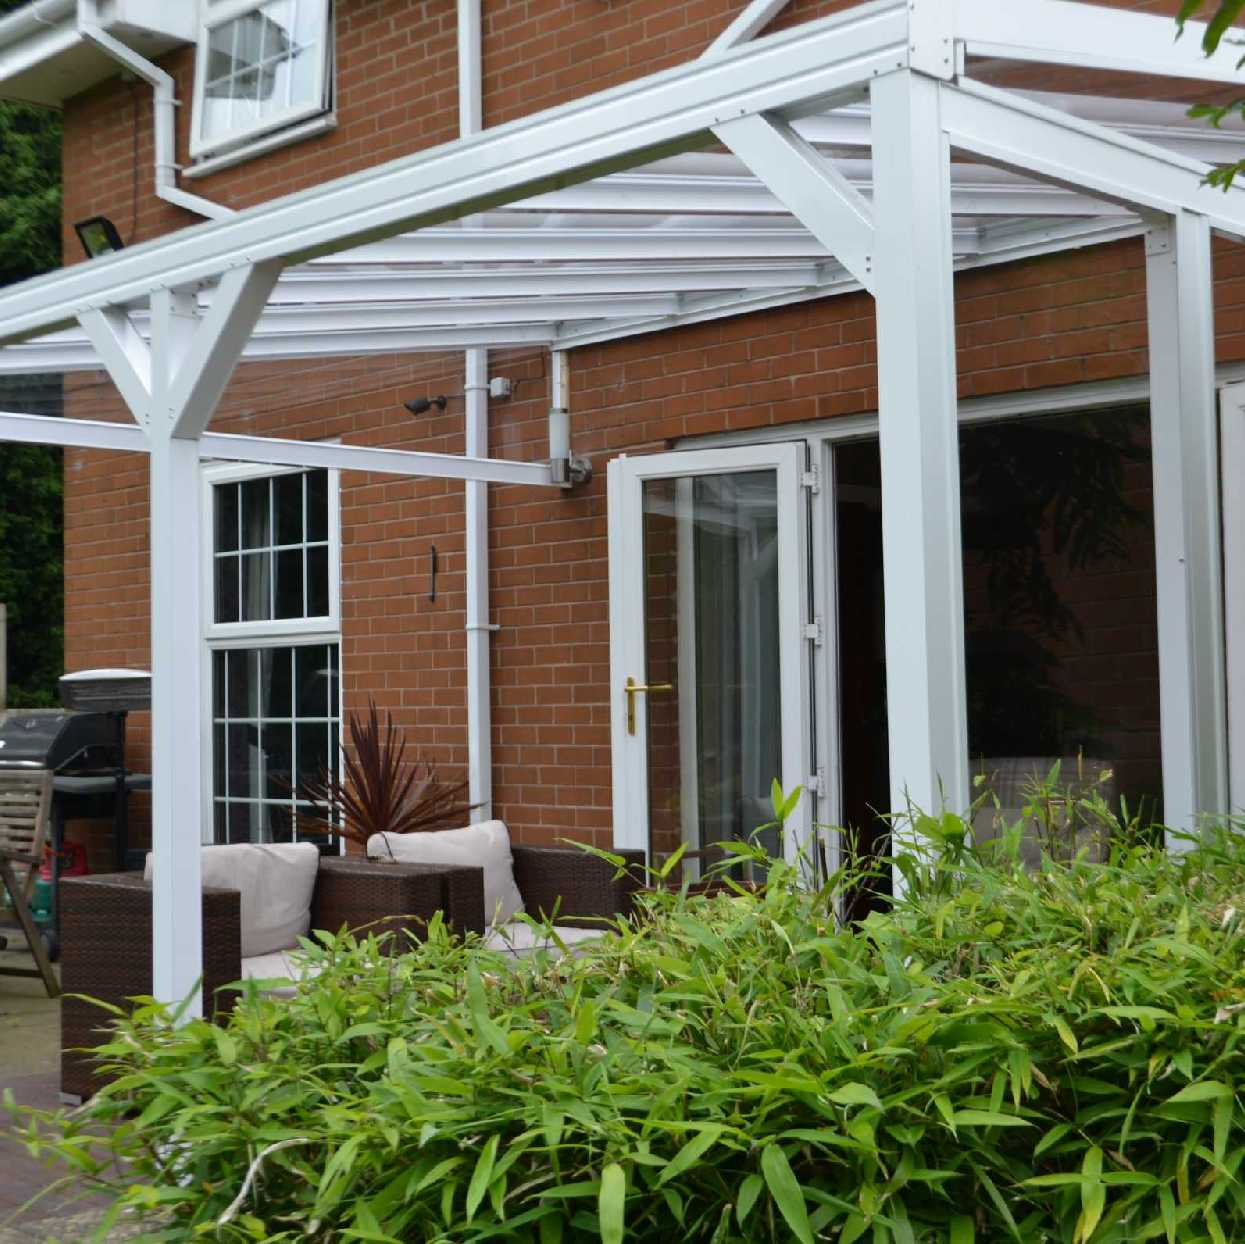 Omega Smart Lean-To Canopy UNGLAZED for 6mm Glazing - 6.3m (W) x 3.0m (P), (4) Supporting Posts from Omega Build